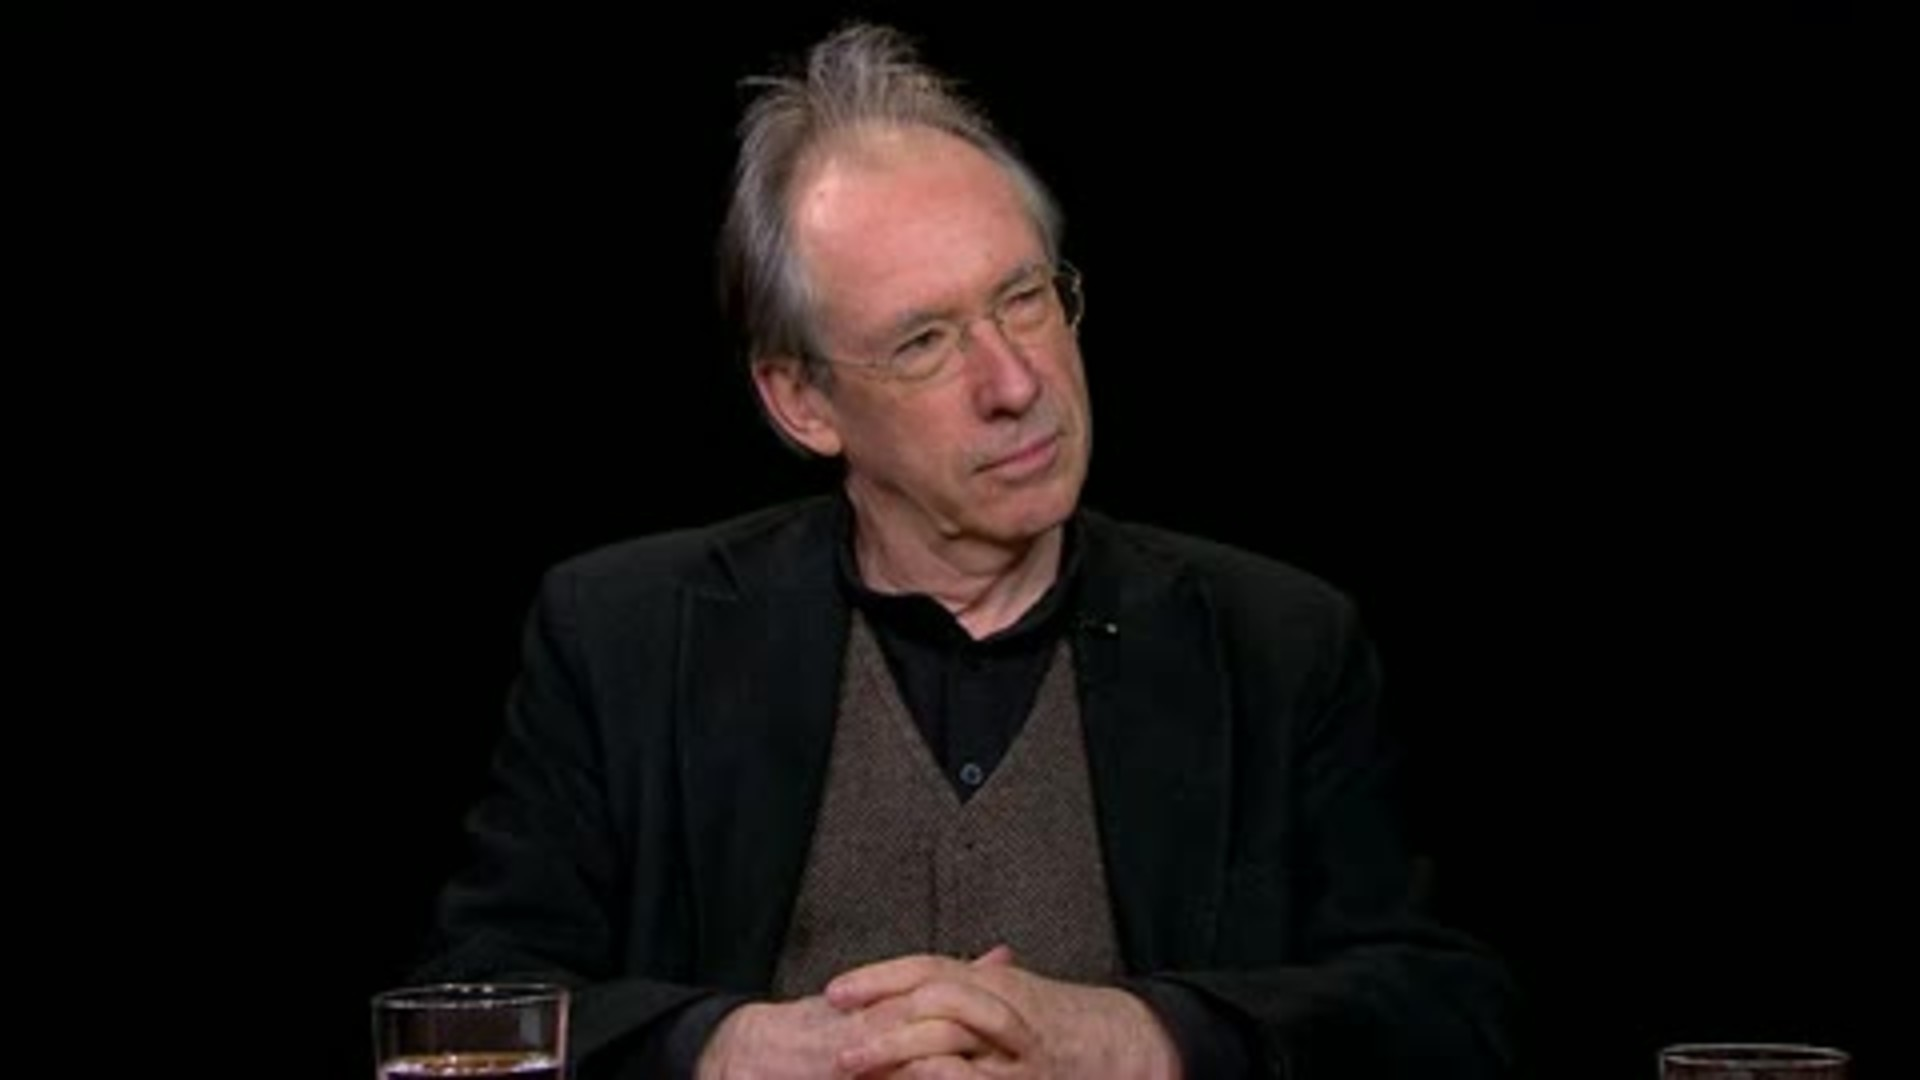 Author Ian Mcewan Reflects On His Late Friend Christopher Hitchens And  Introduces His Latest Book,